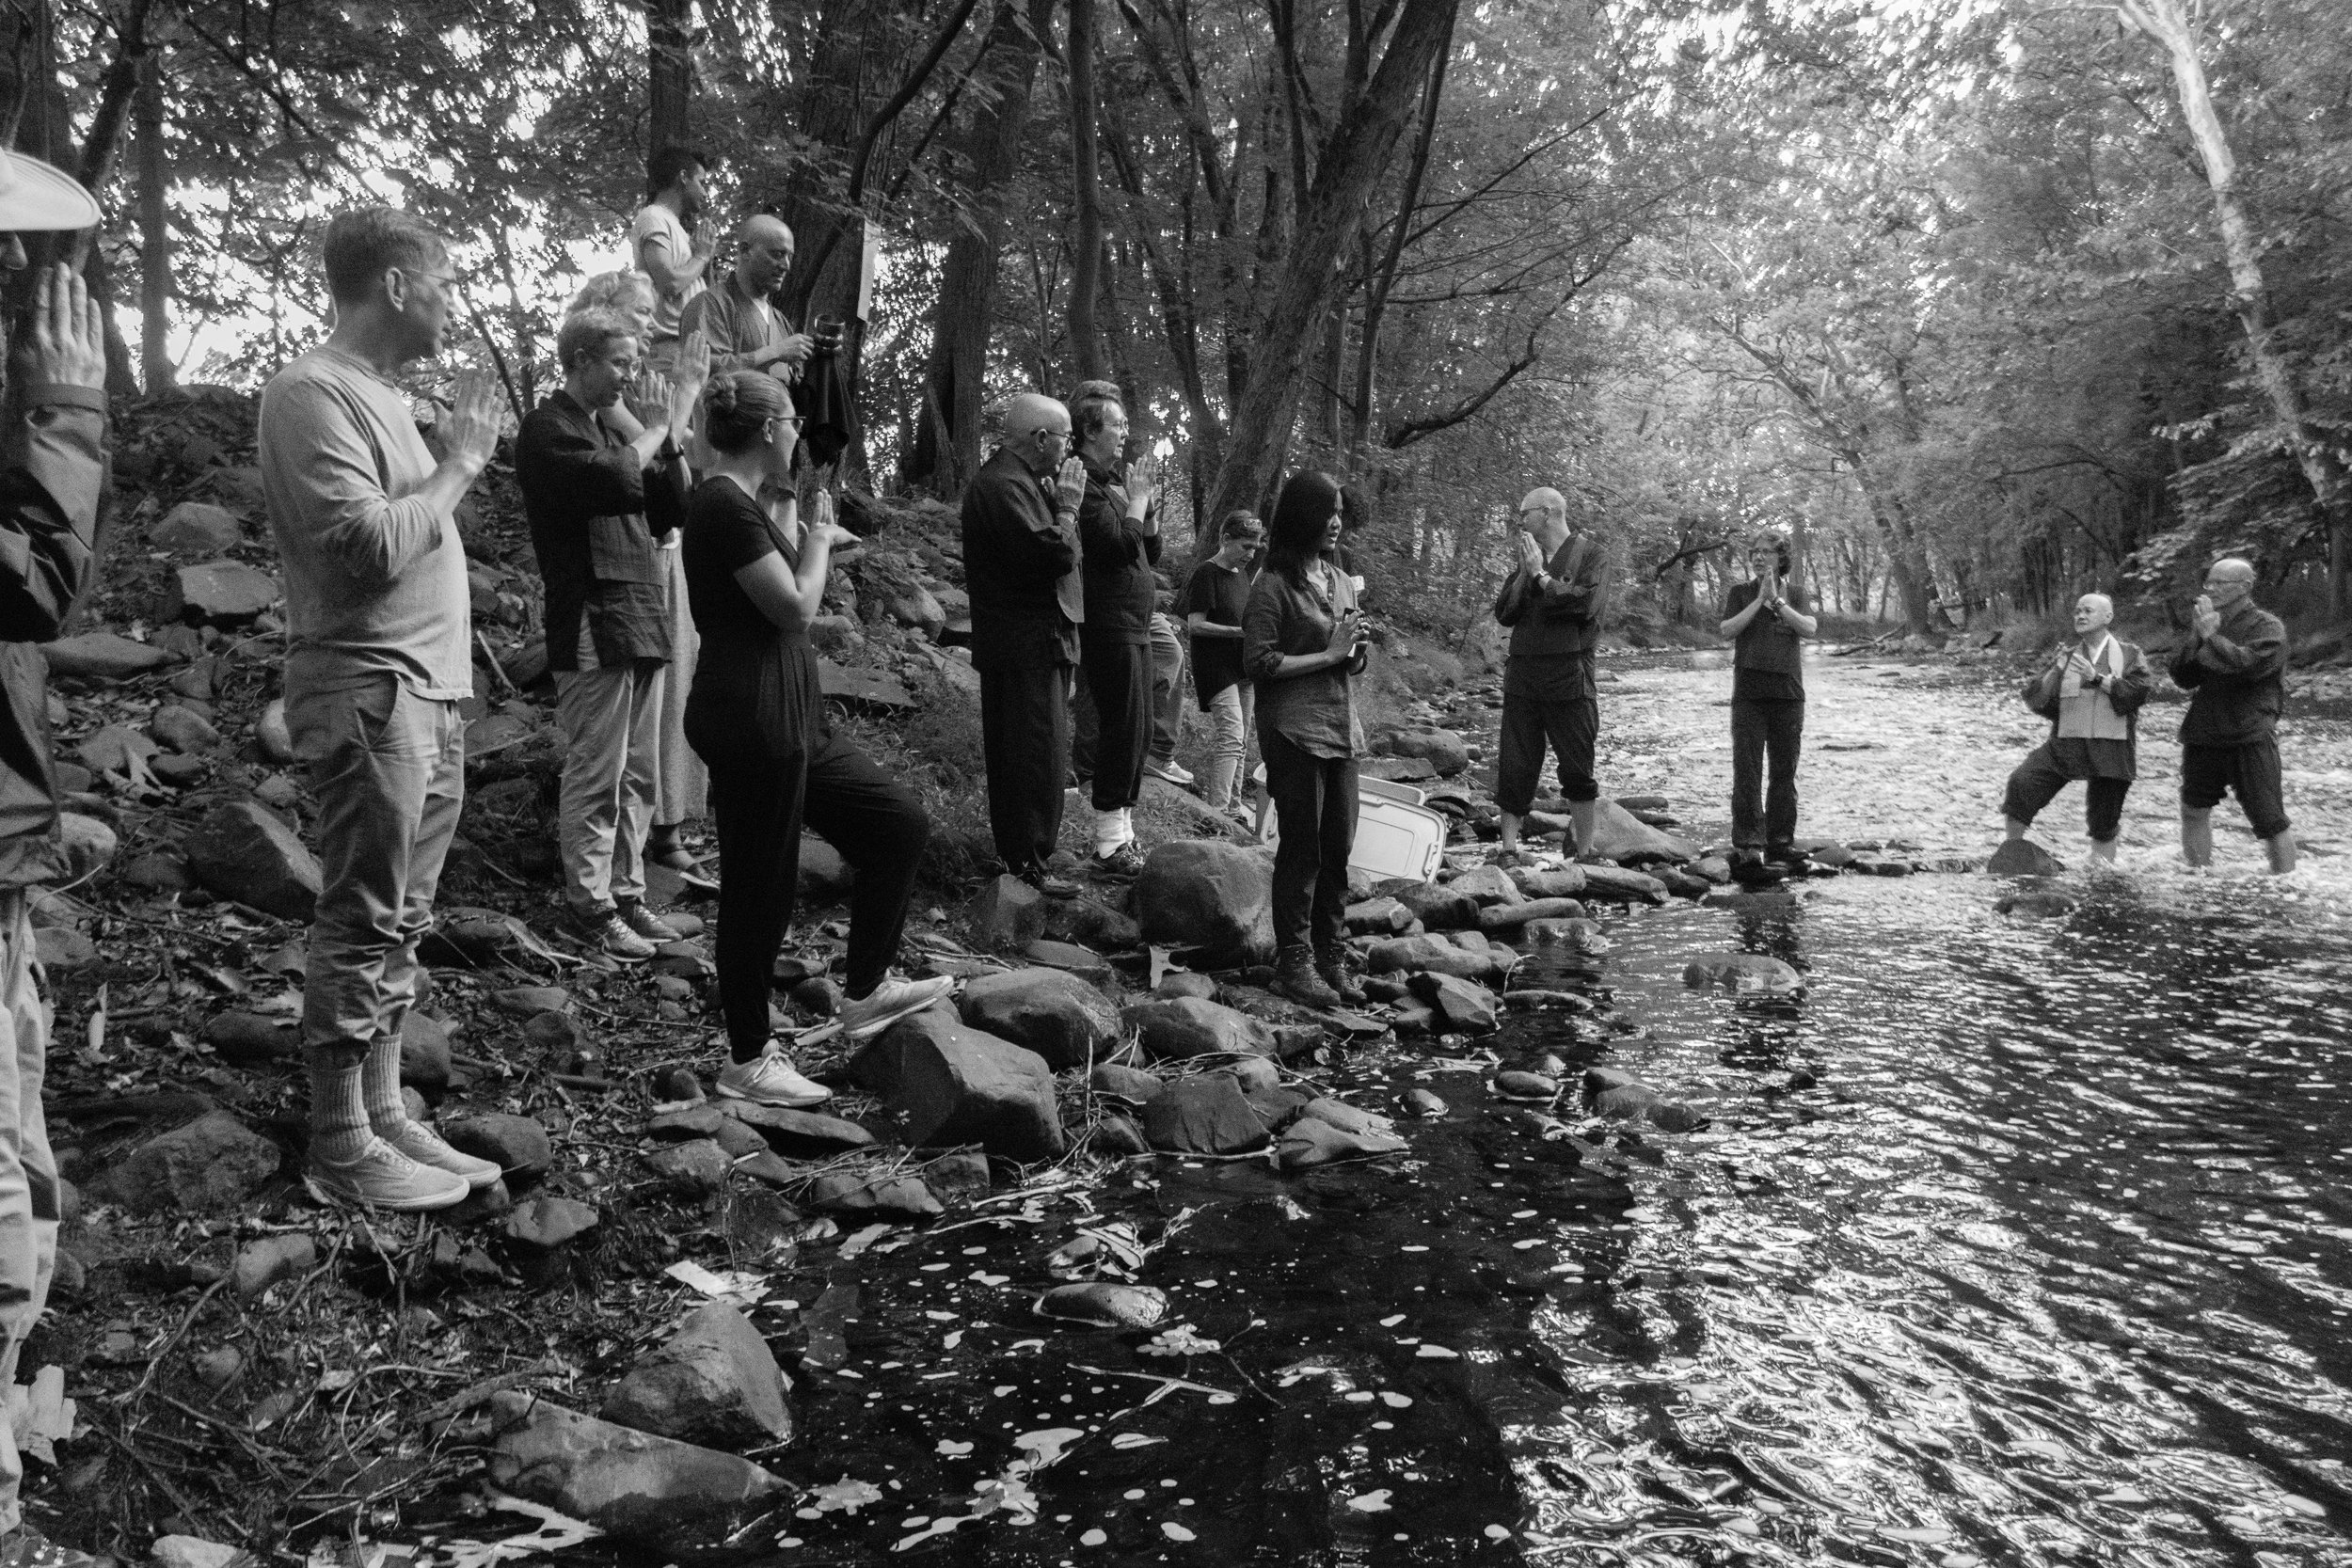 Members of Village Zendo stand along a river bank during the Obon ceremony honoring people who passed away.